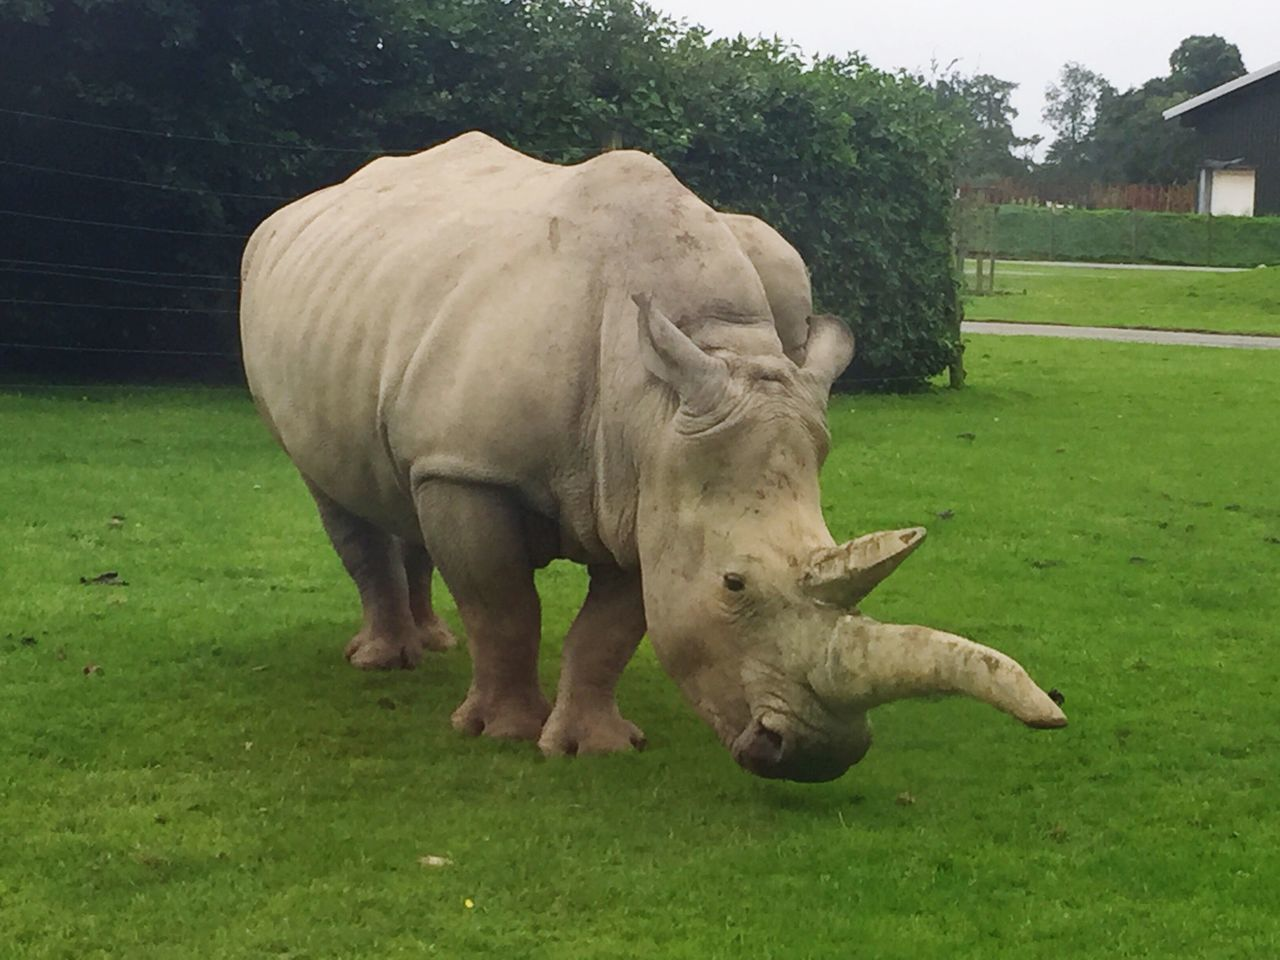 WhiteRhino RhinoHorn Safaripark Beauty In Nature Wild